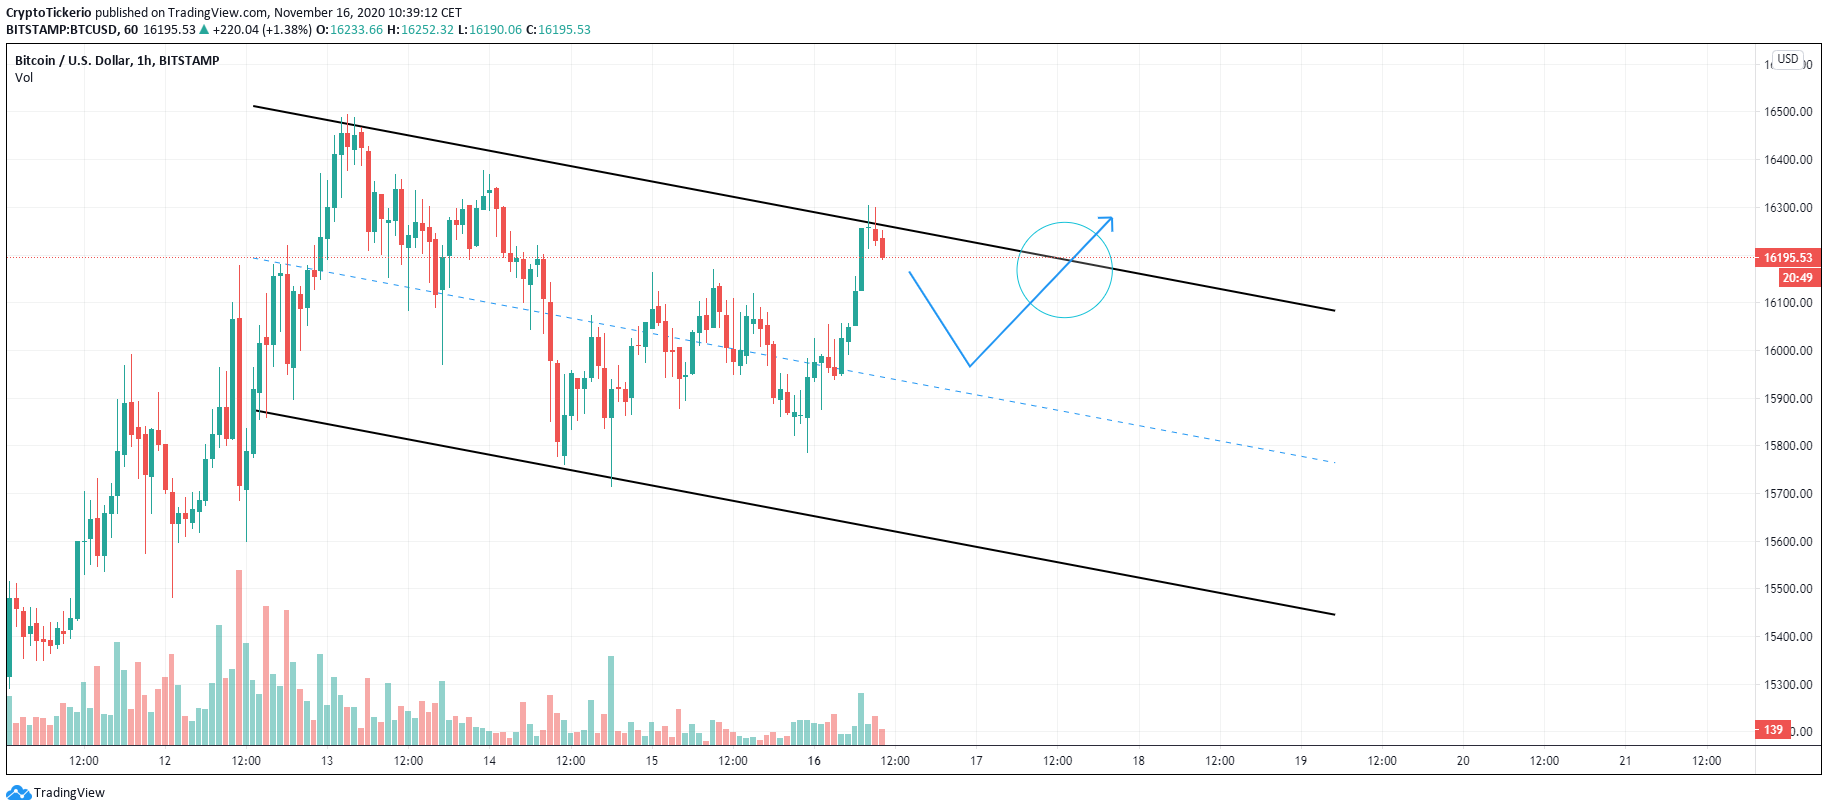 Downward channel forming